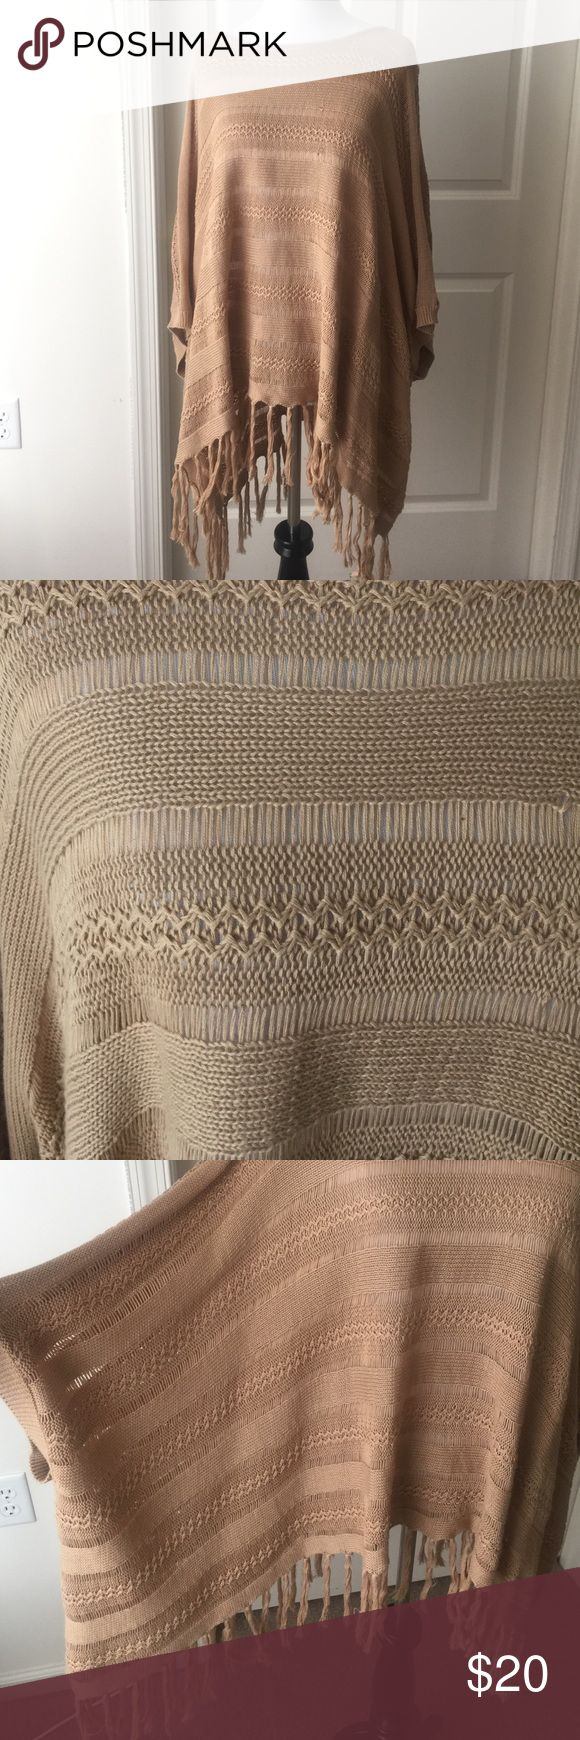 Grace & Lace Poncho Tan poncho. Lightweight. Fringes on bottom. Grace & Lace started from Shark Tank the tv show Grace & Lace  Tops Tunics